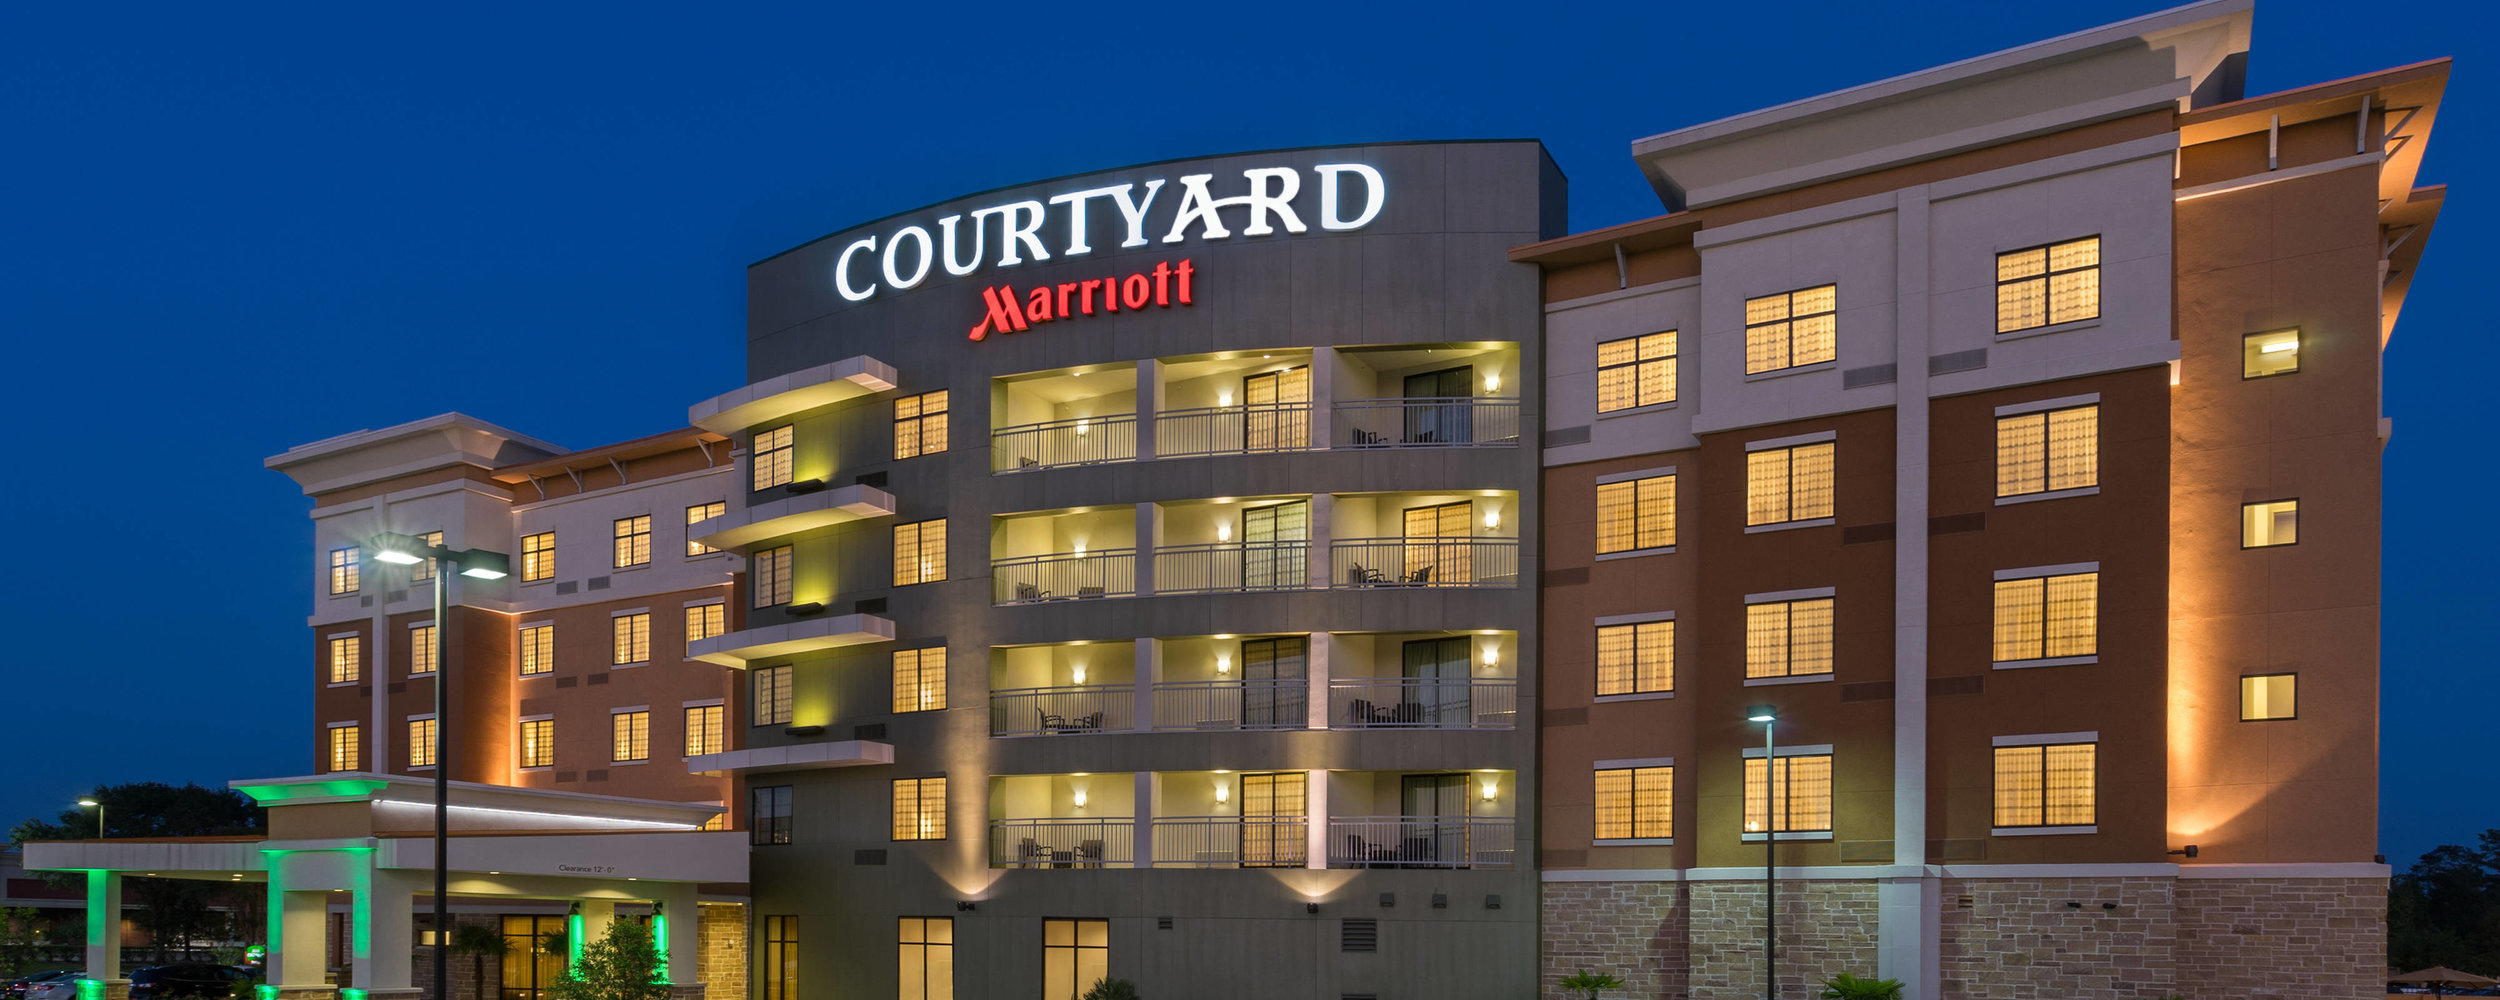 Courtyard by Marriott is a brand of hotels owned by Marriott International. They are a mid-priced range of hotels designed for business travellers but also accommodates families. Its rooms have desks, couches, and free Internet access